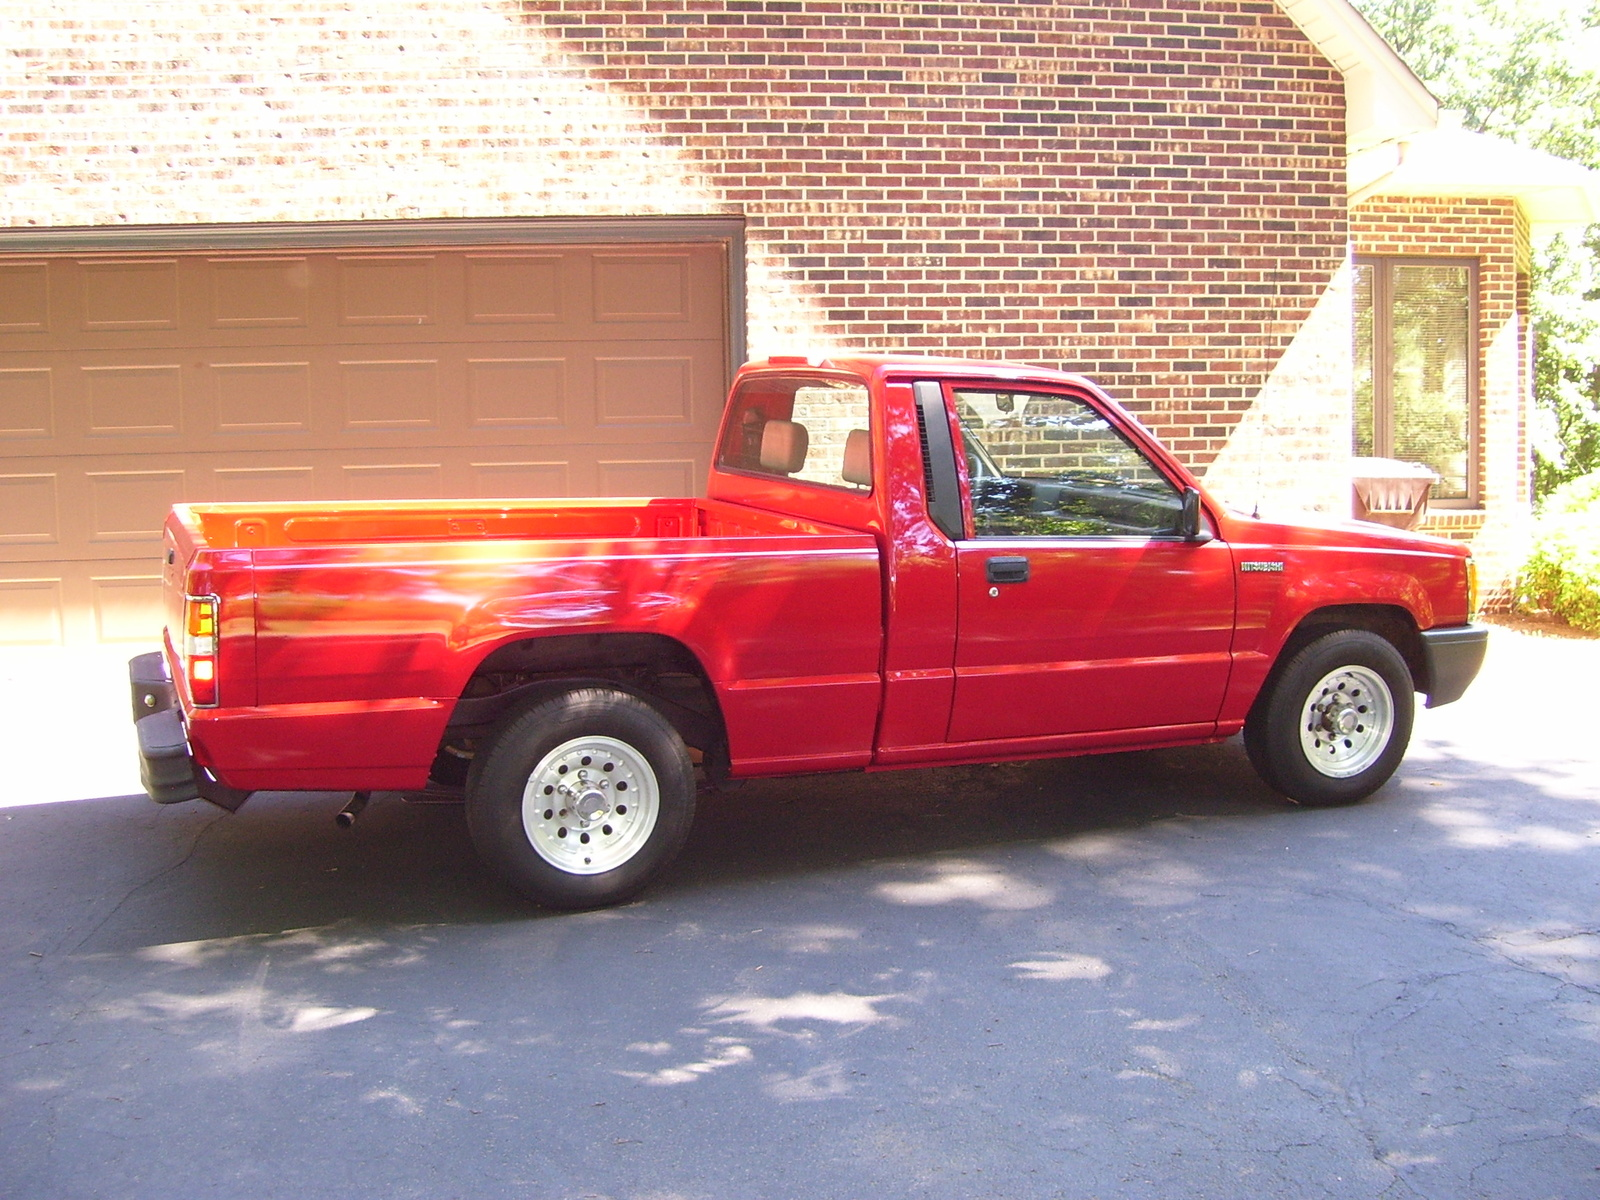 1995 Mitsubishi Mighty Max Pickup Overview C5743 on new de tomaso car